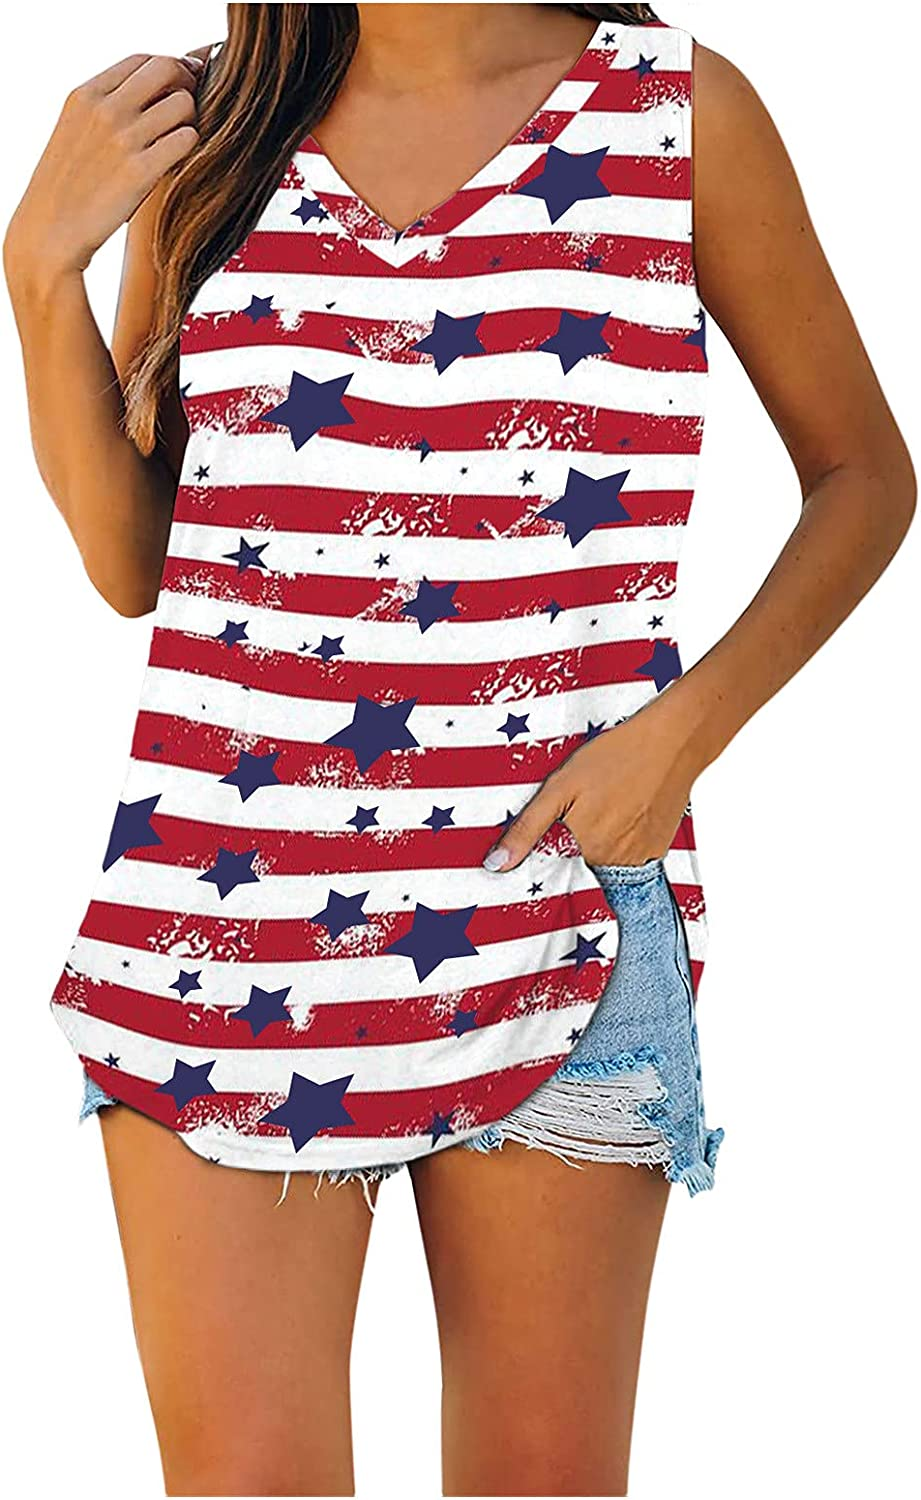 Summer Tank Tops for Women, 2021 4th of July Shirts Sleeveless Tees American Flag Casual T Shirt Blouses